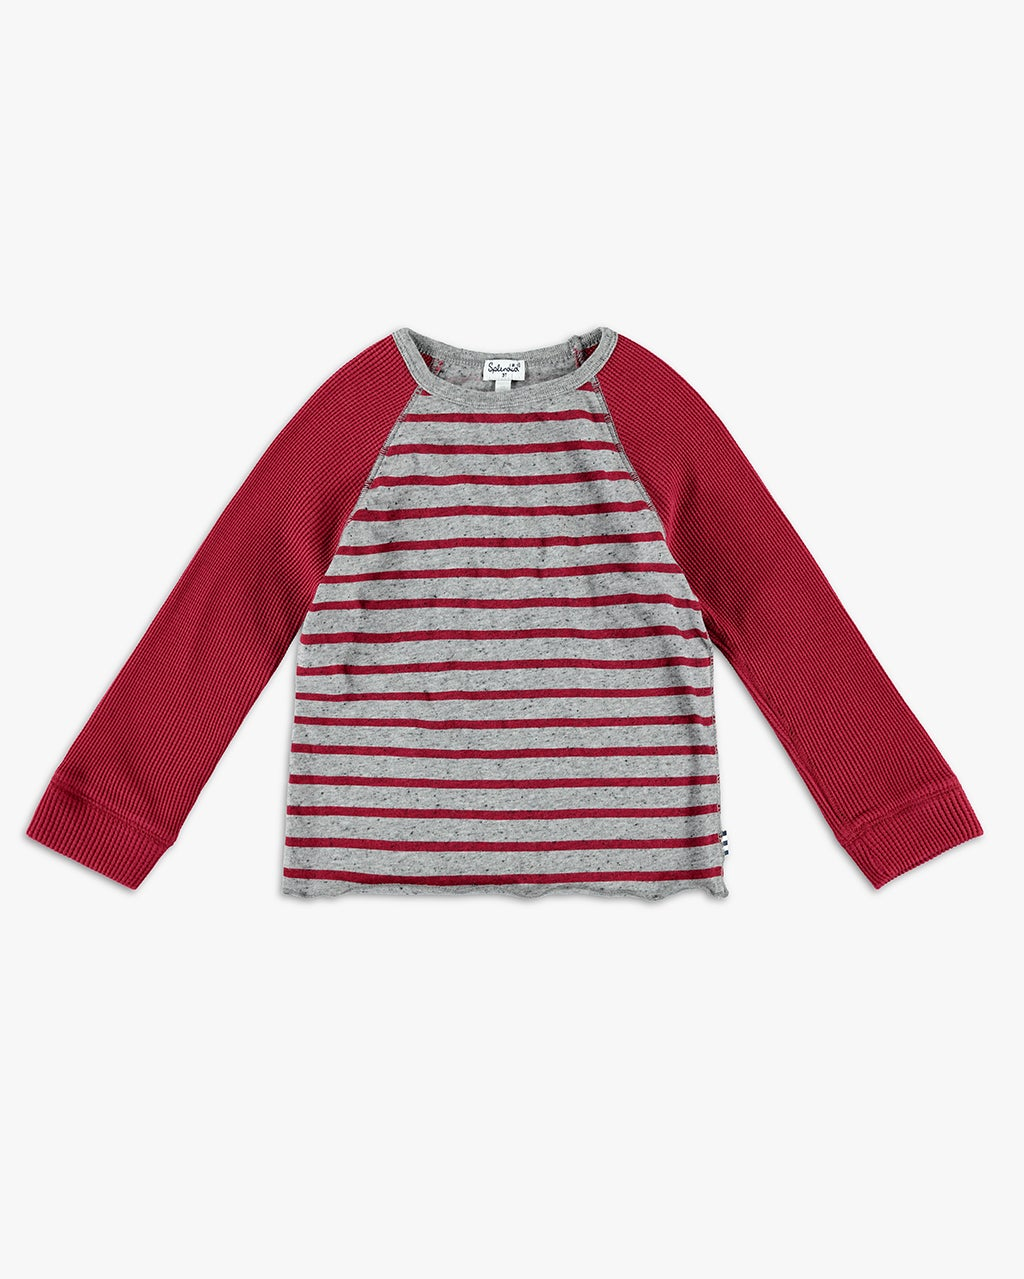 Splendid Little Boy Stripe Raglan Tee